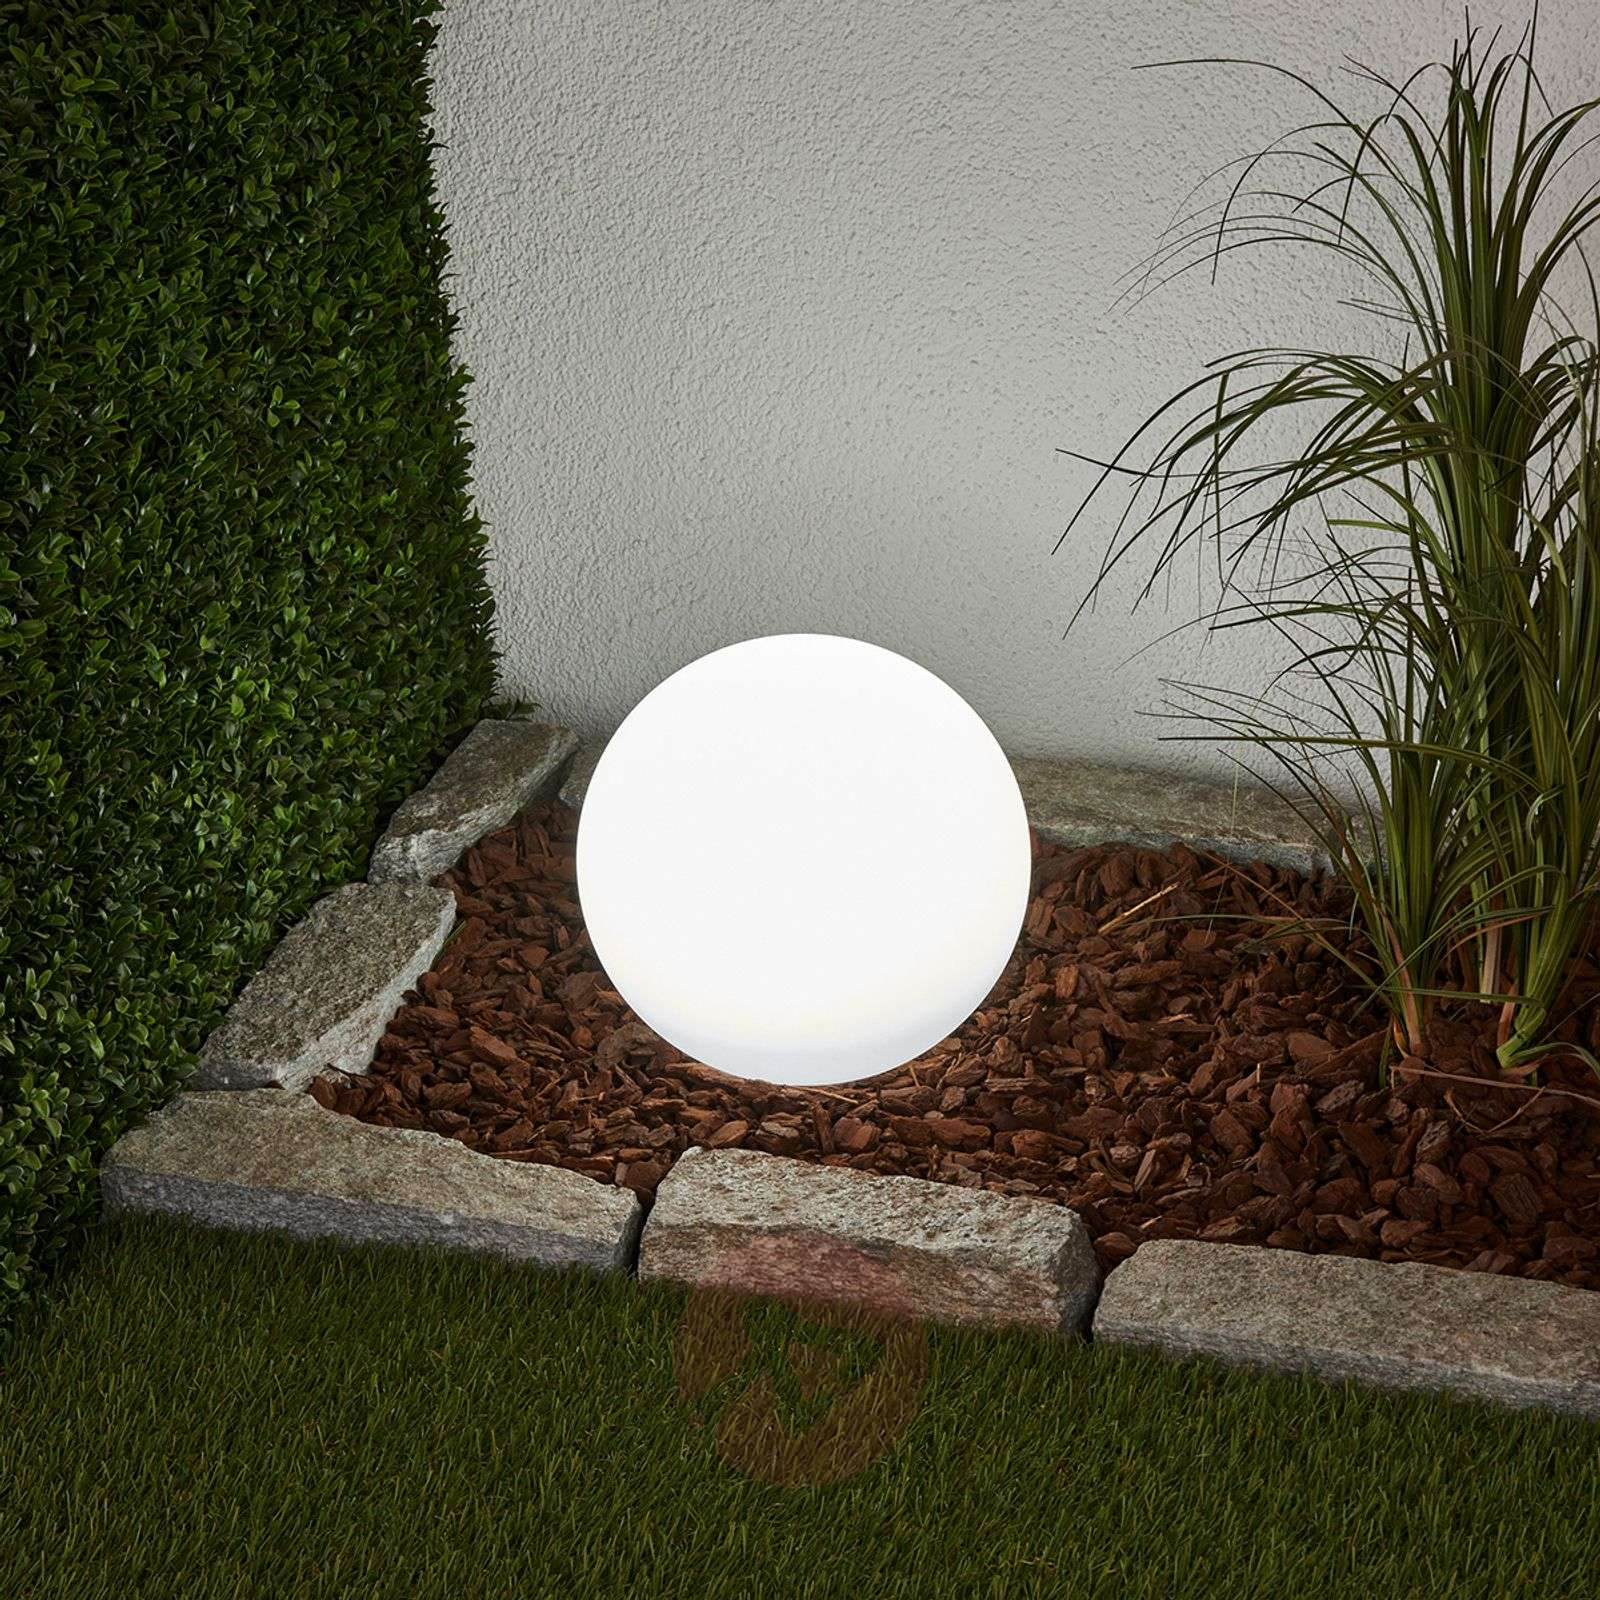 3-piece set LED solar lamps Lago, spheres-4018065-03